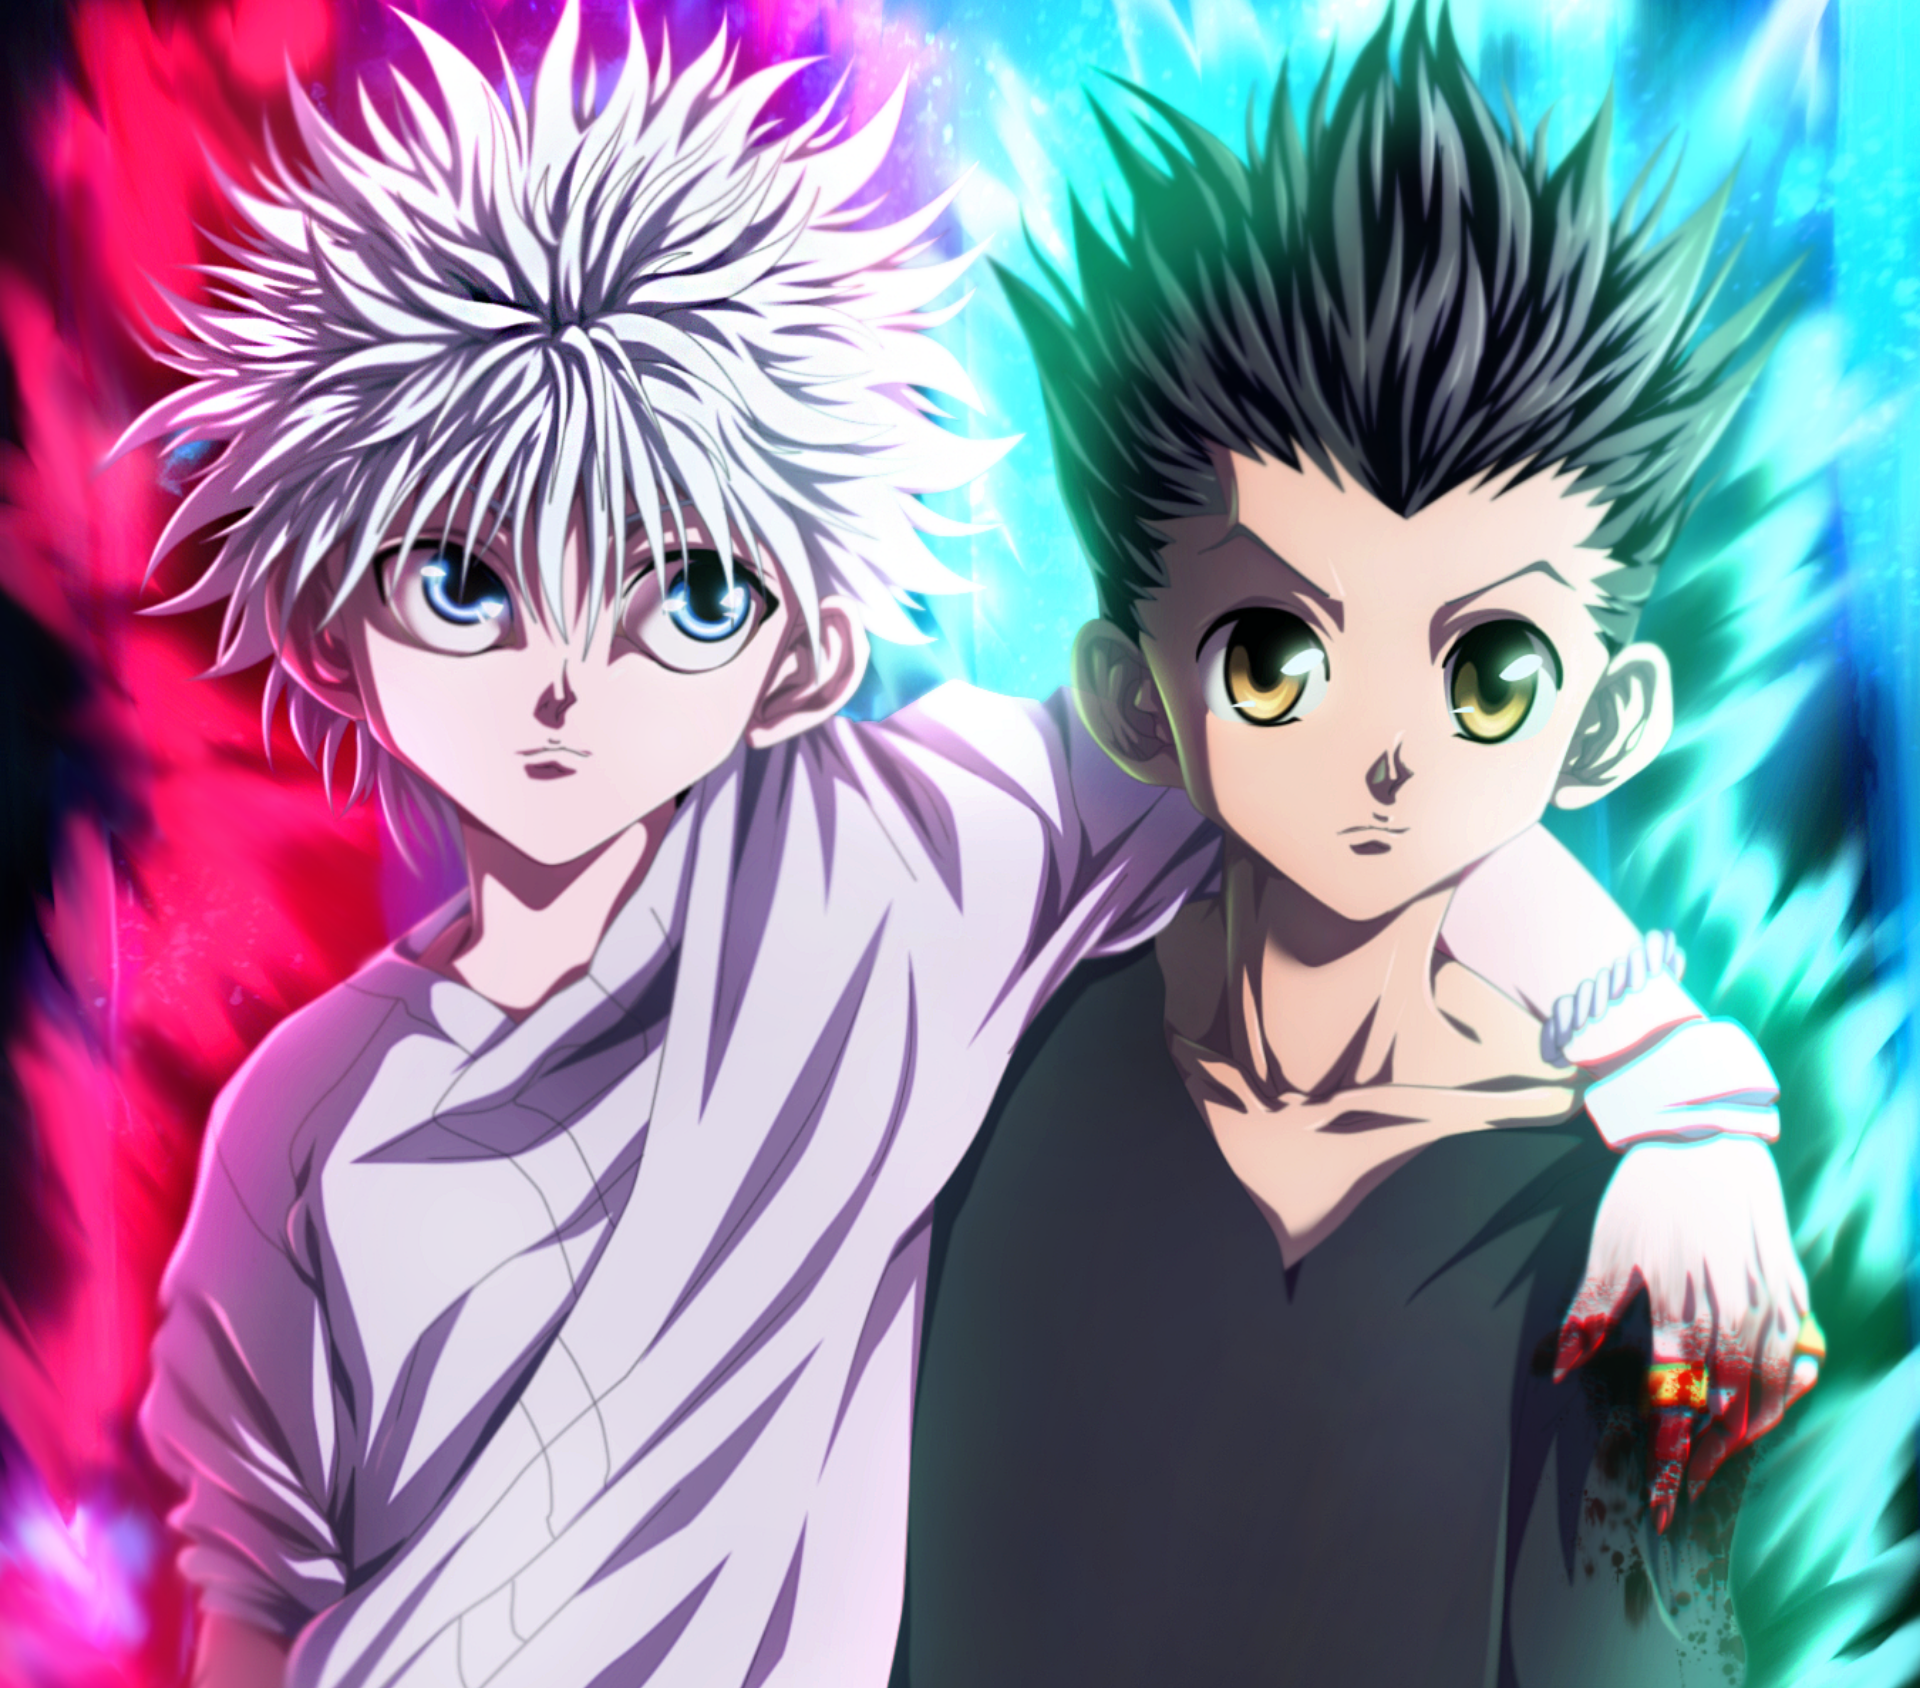 Gon Freecss Wallpapers Top Free Gon Freecss Backgrounds